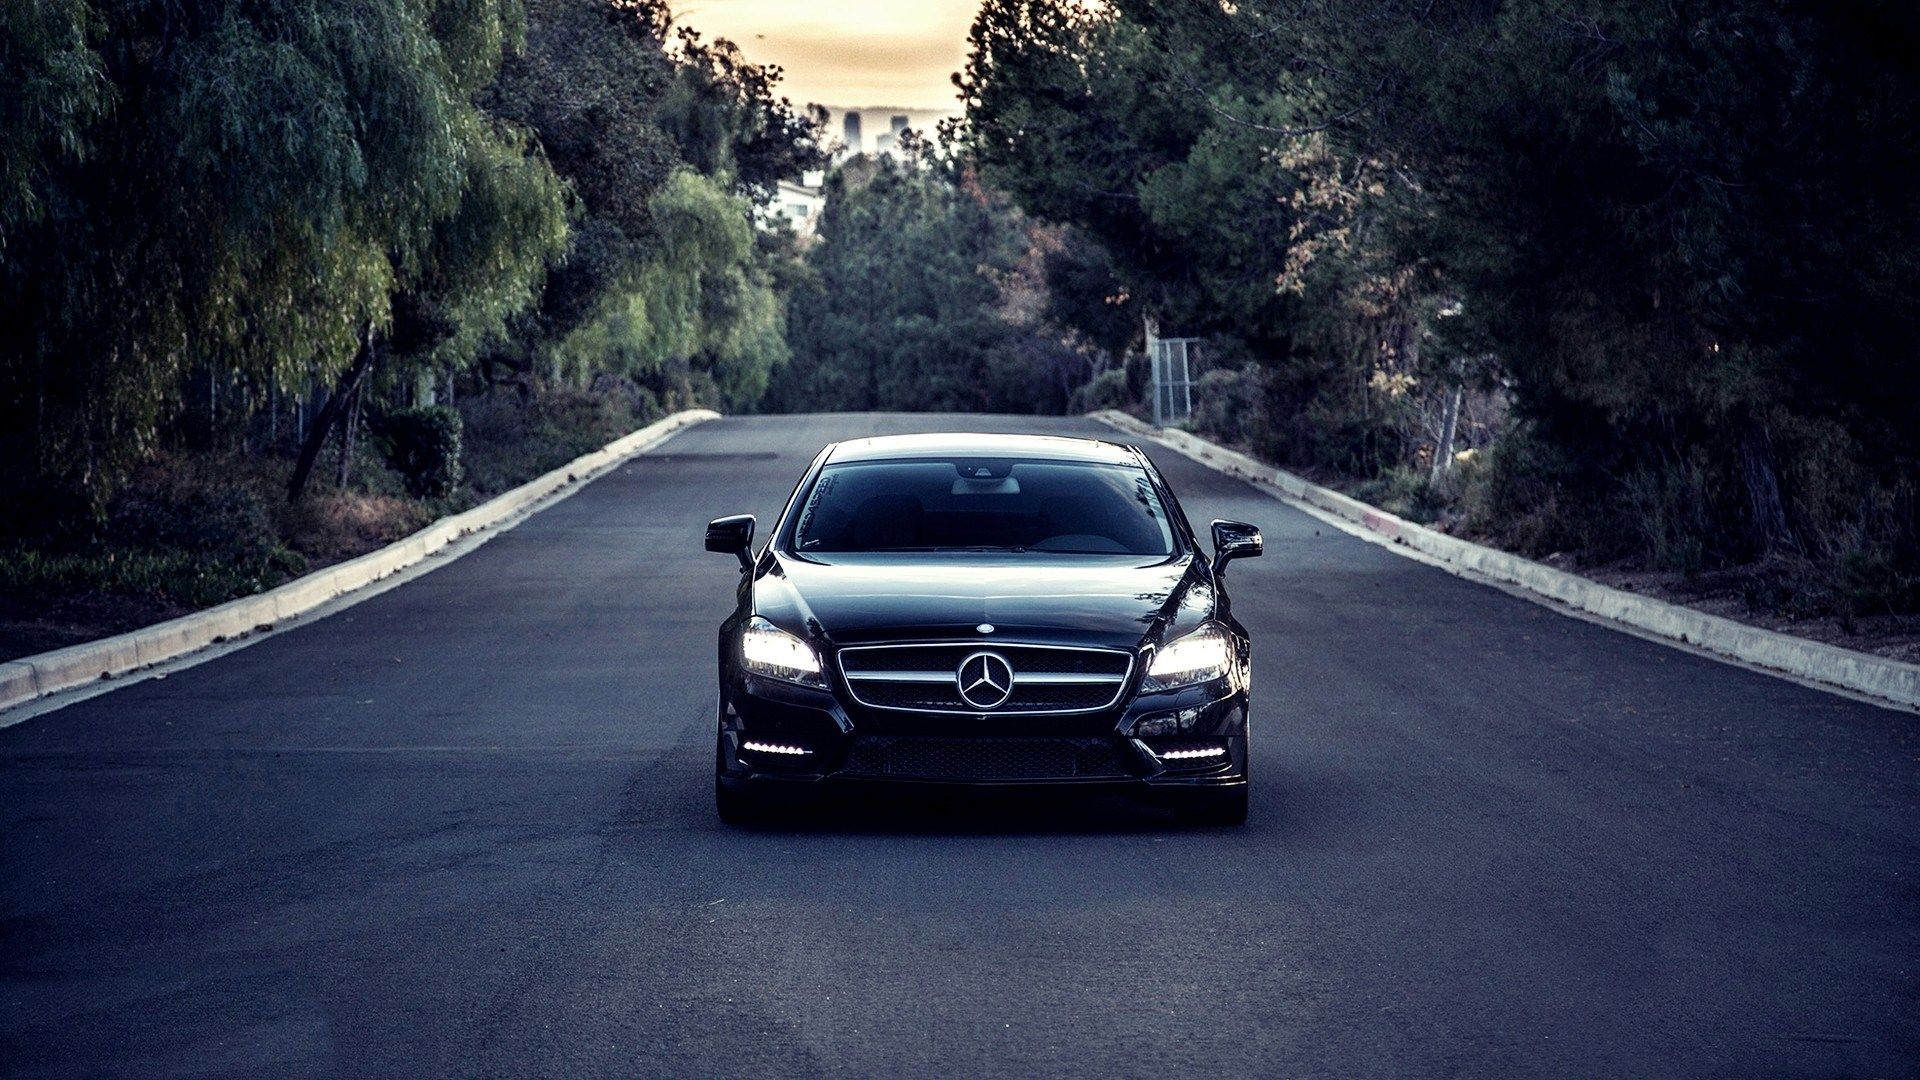 mercedes benz hd wallpaper | cars & vehicle | pinterest | hd